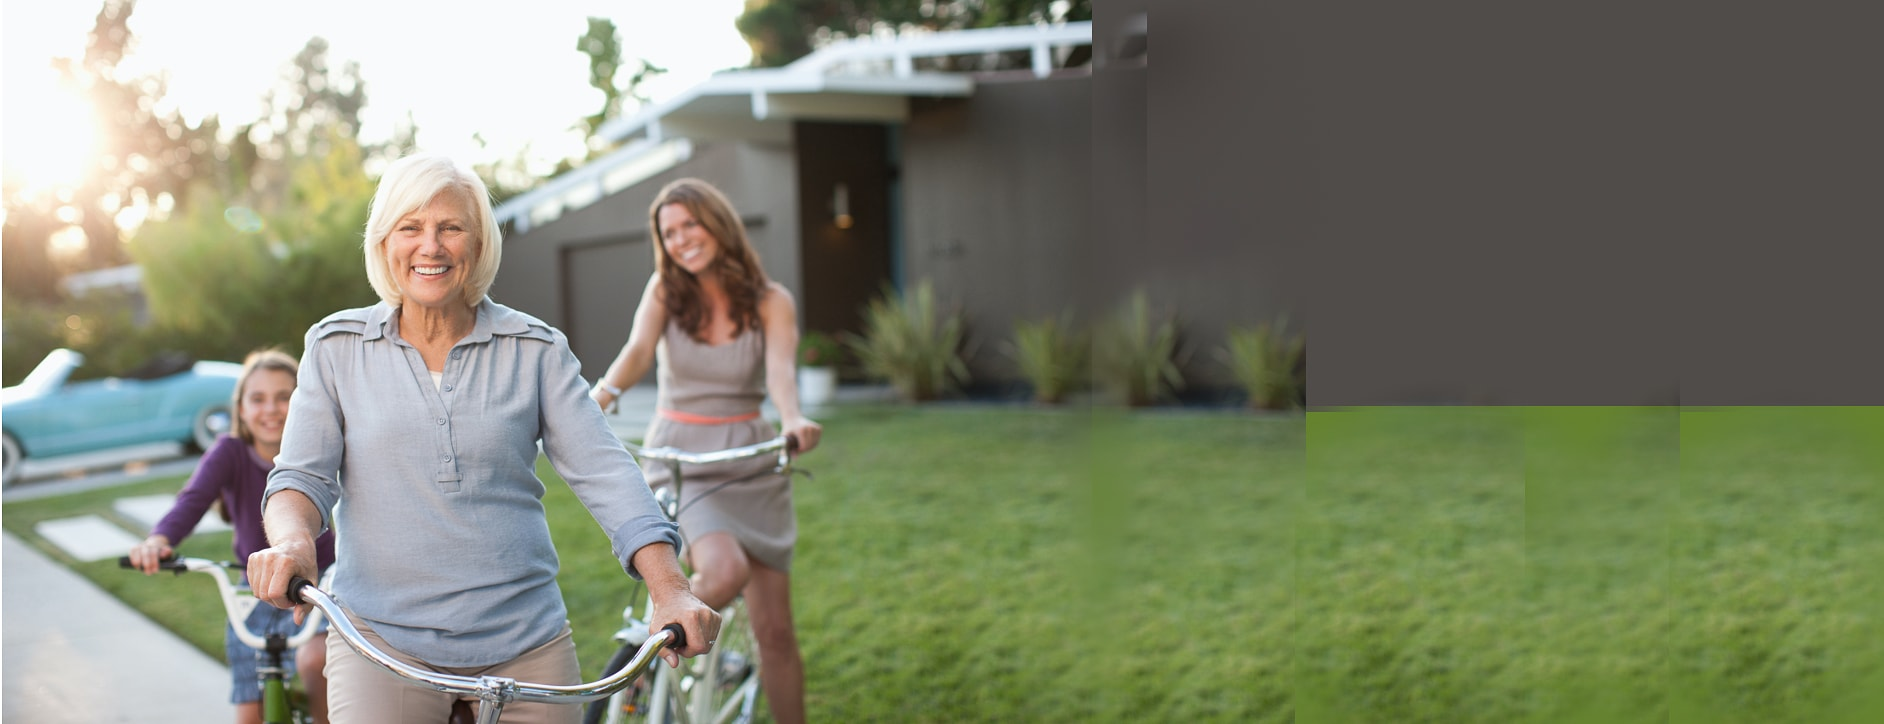 woman in her front yard on a bike with her daughter and grandchild